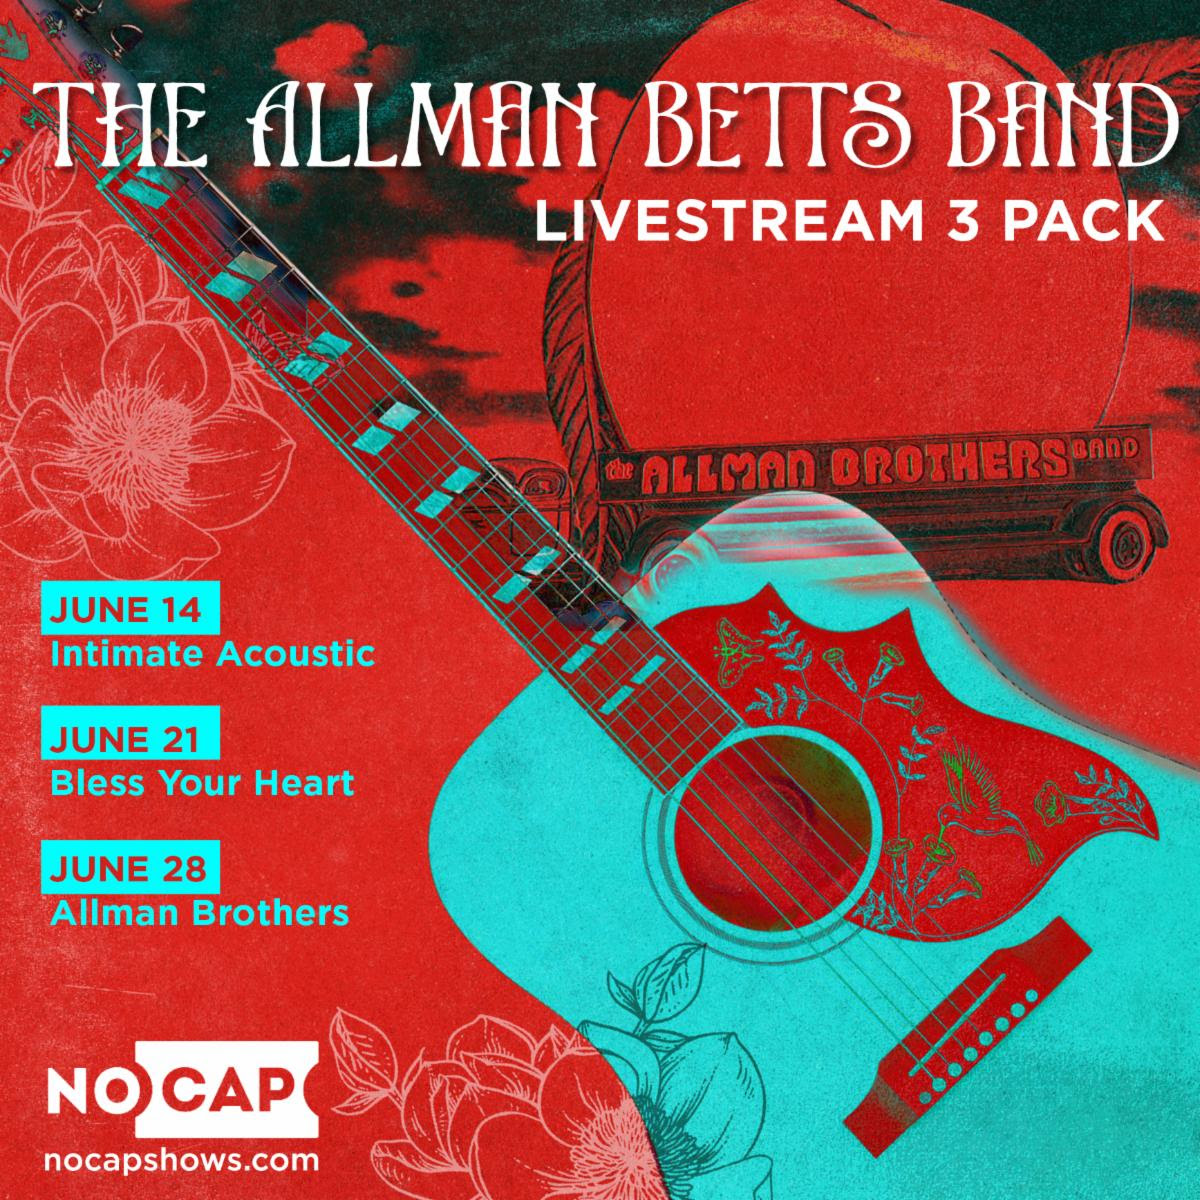 The Allman Betts Band announce one of a kind livestream performances coming this June